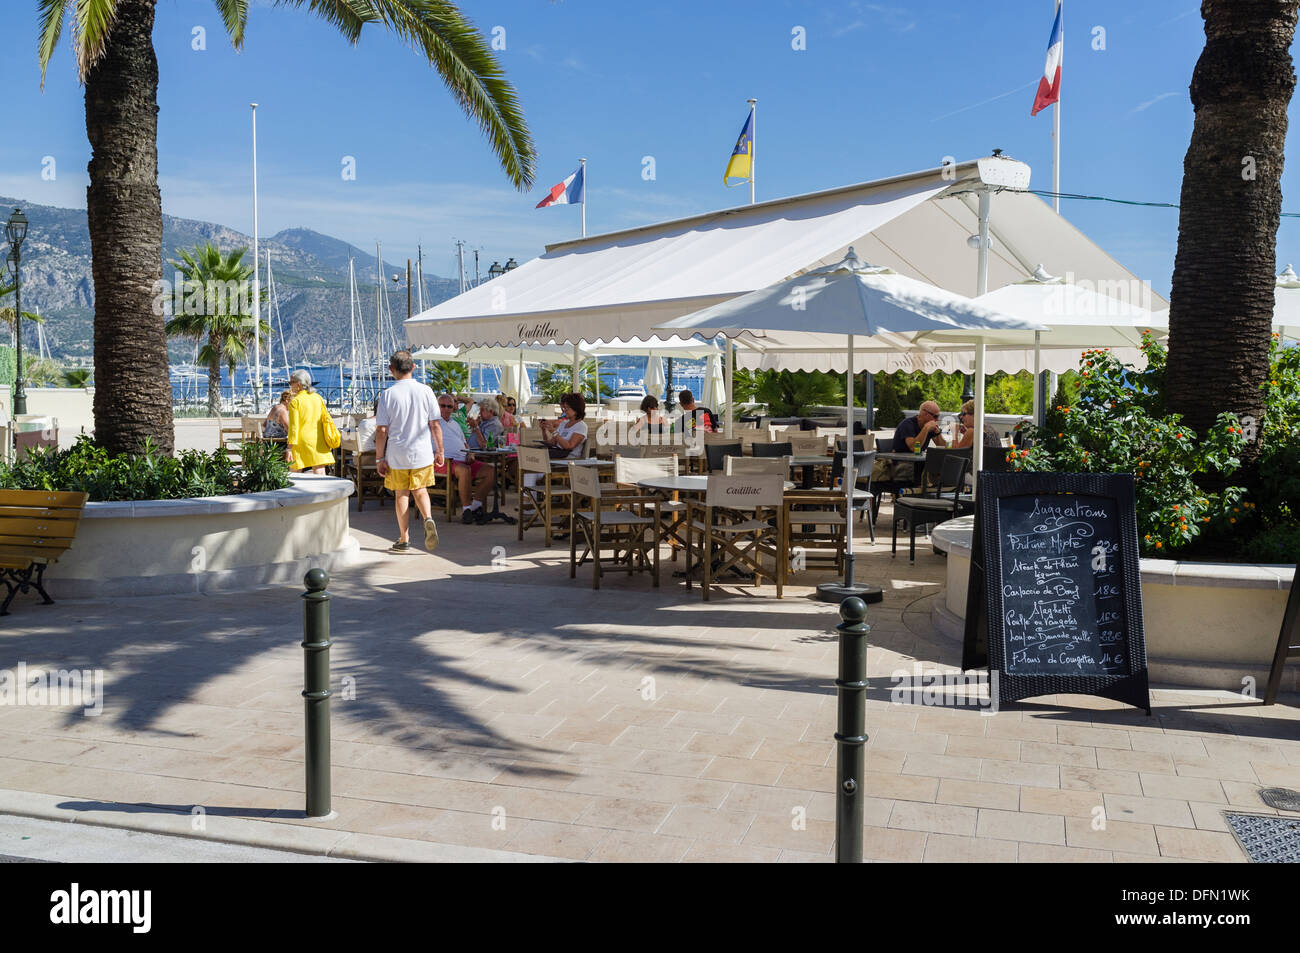 Cadillac Restaurant In St-jean-cap-ferrat Stock Photo, Royalty Free